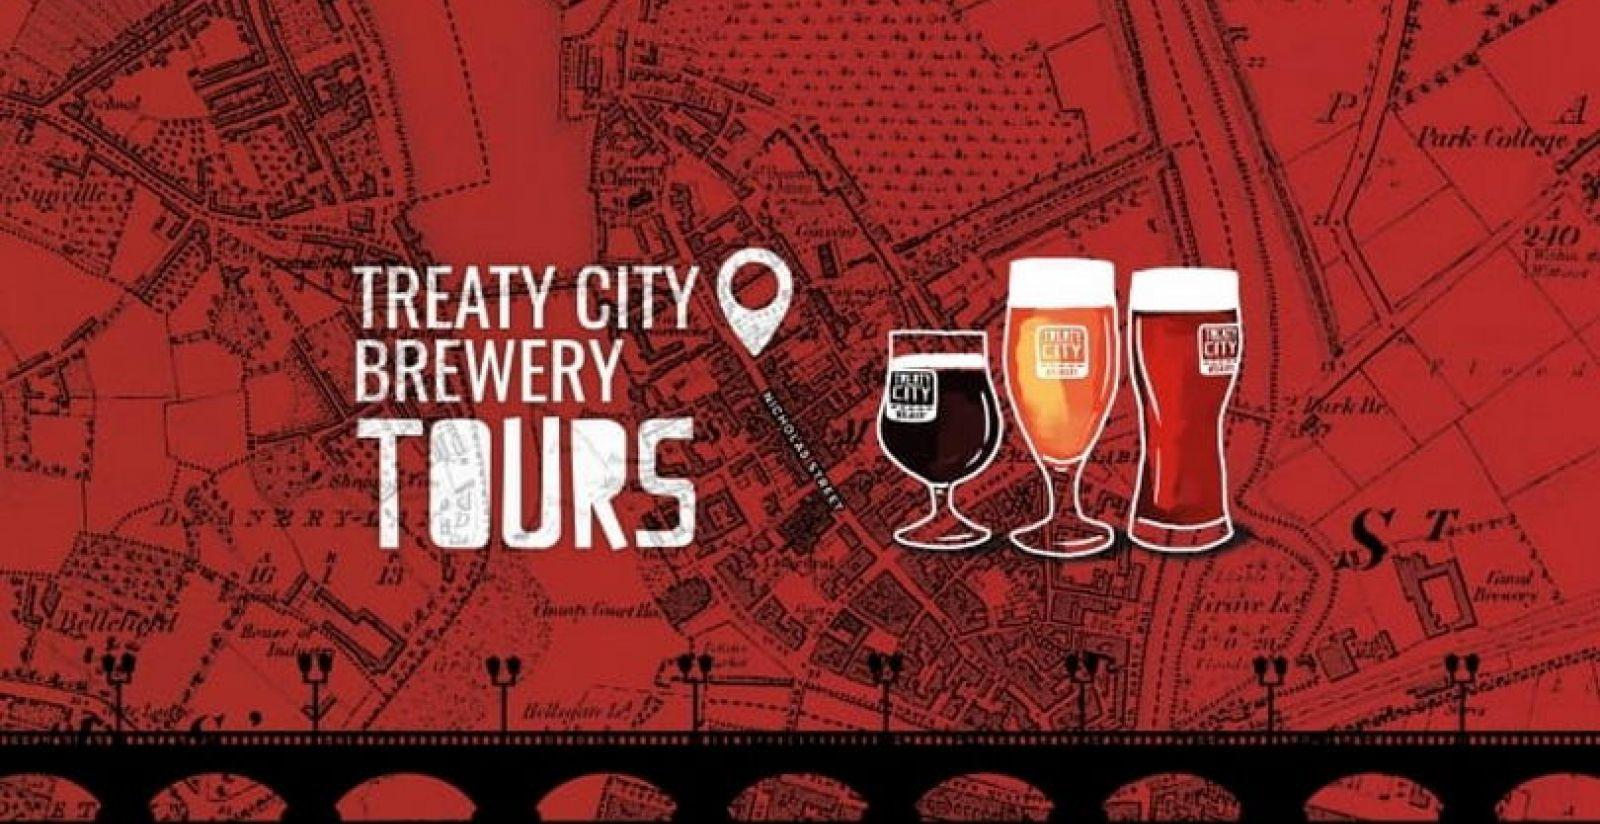 Treaty City Brewery Tours